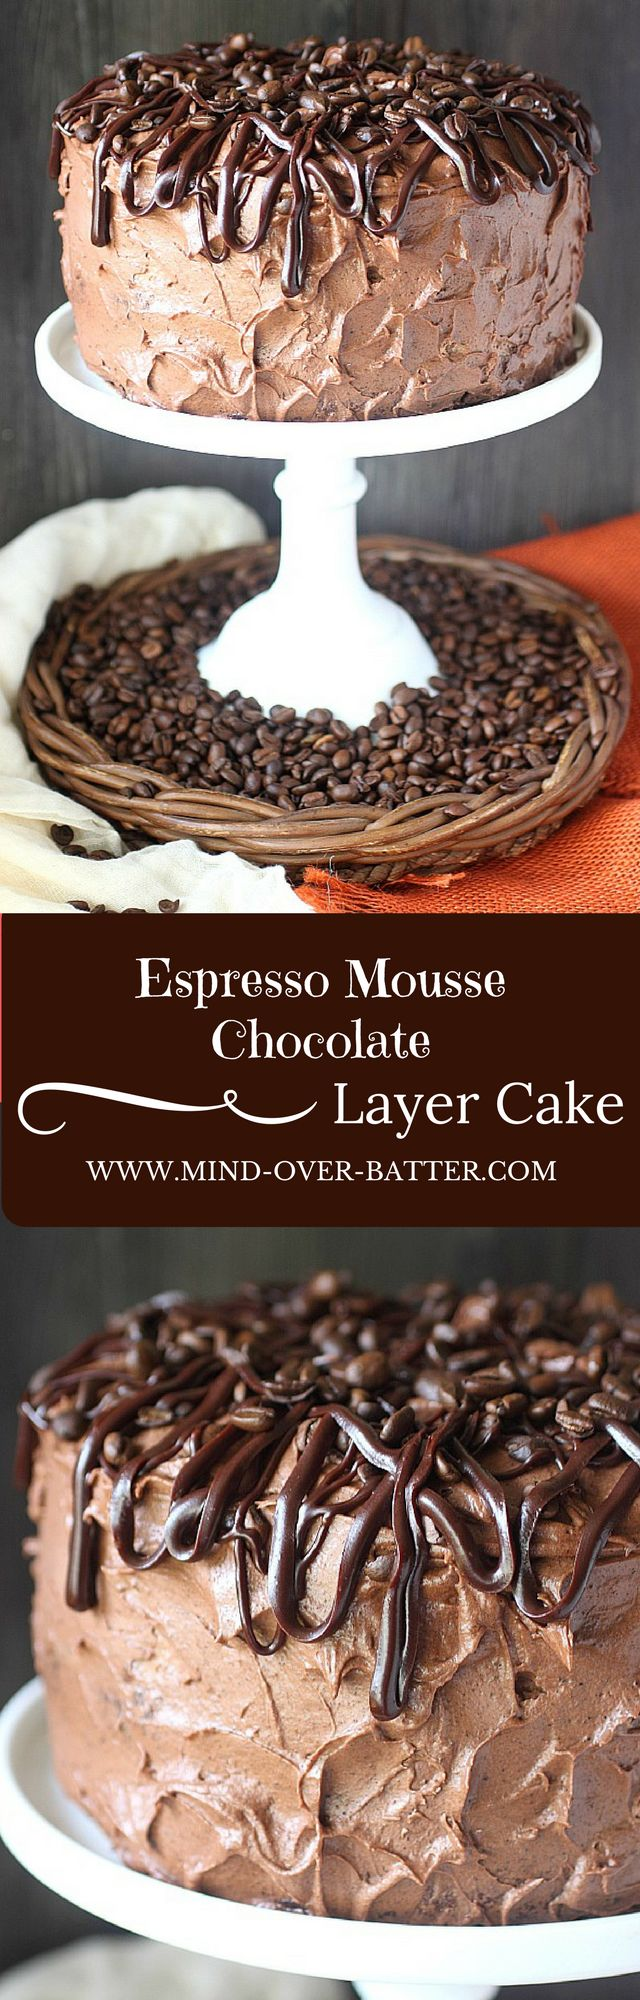 Espresso Mousse Chocolate Layer Cake -- www.mind-over-batter.com